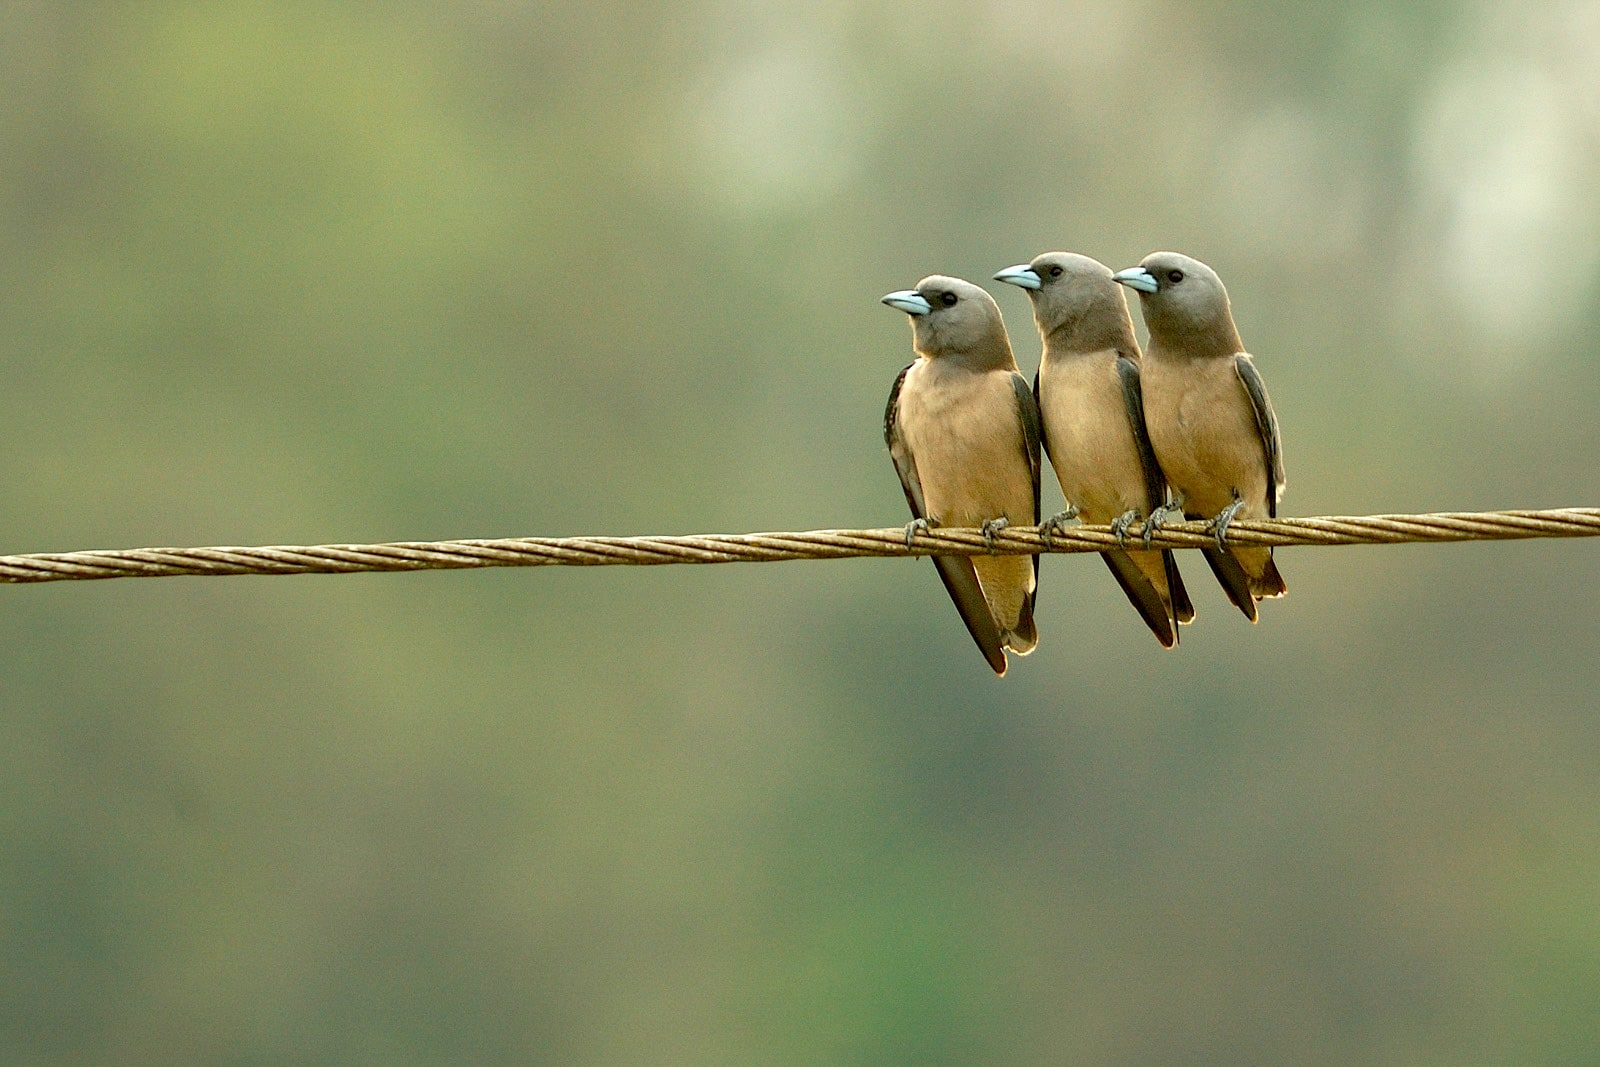 Sitting in the garden, I would often hear the unmistakable calls of the ashy woodswallow and would also see them huddled together on the powerlines. Photo: Kalyan Varma, CC BY-SA 4.0